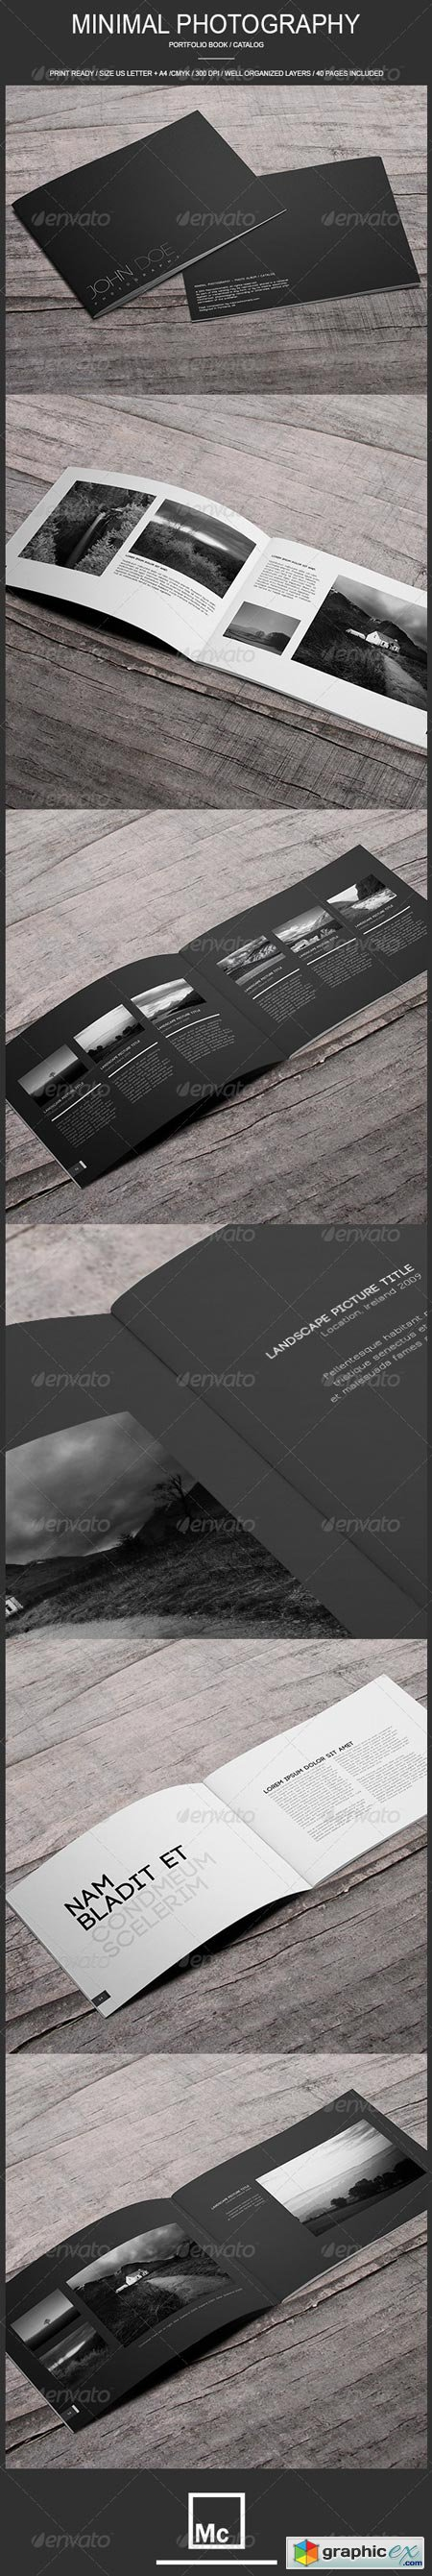 Minimal Photography - Portfolio Book Catalog 6857373